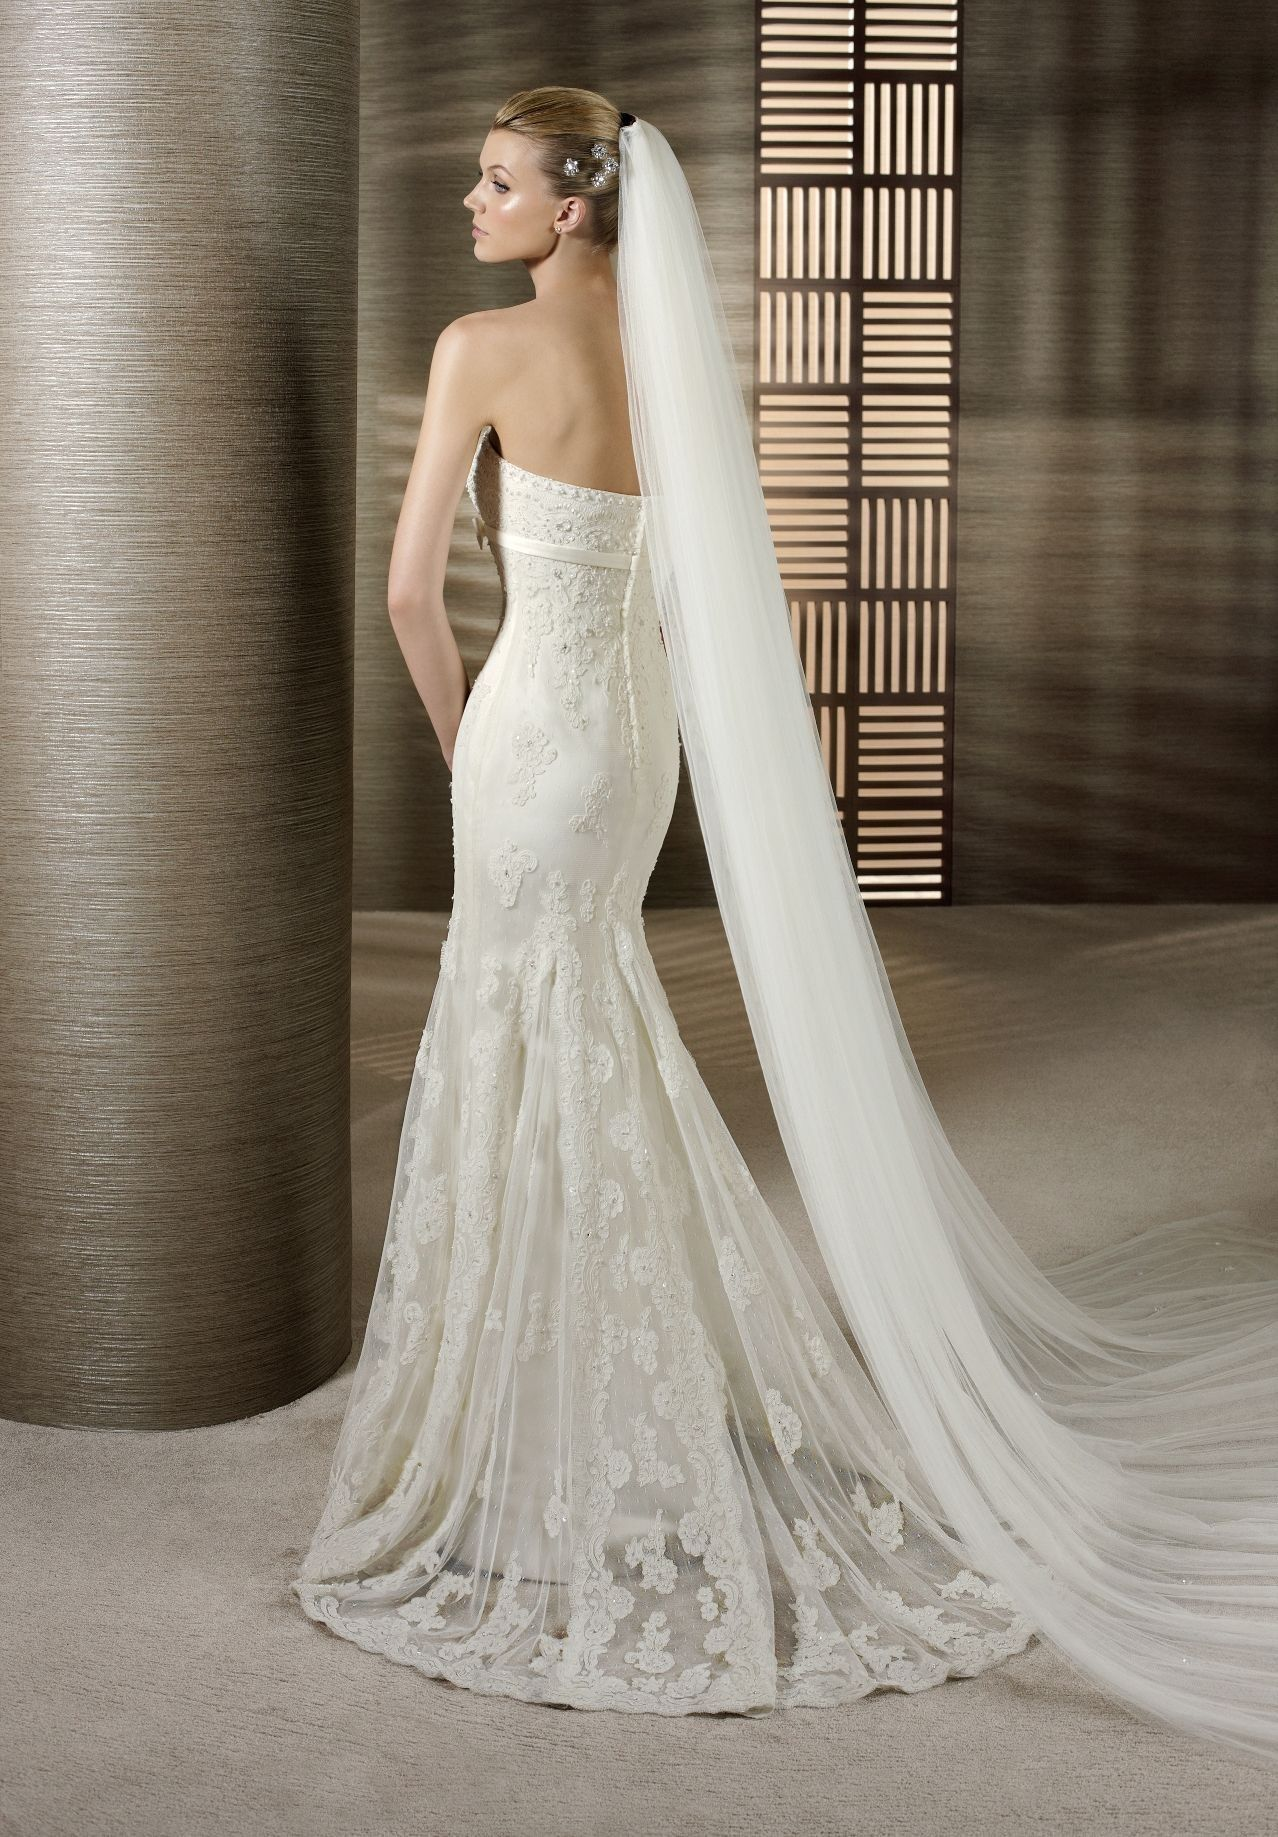 Beauty Looking Sexy and Elegant with Strapless Mermaid Wedding